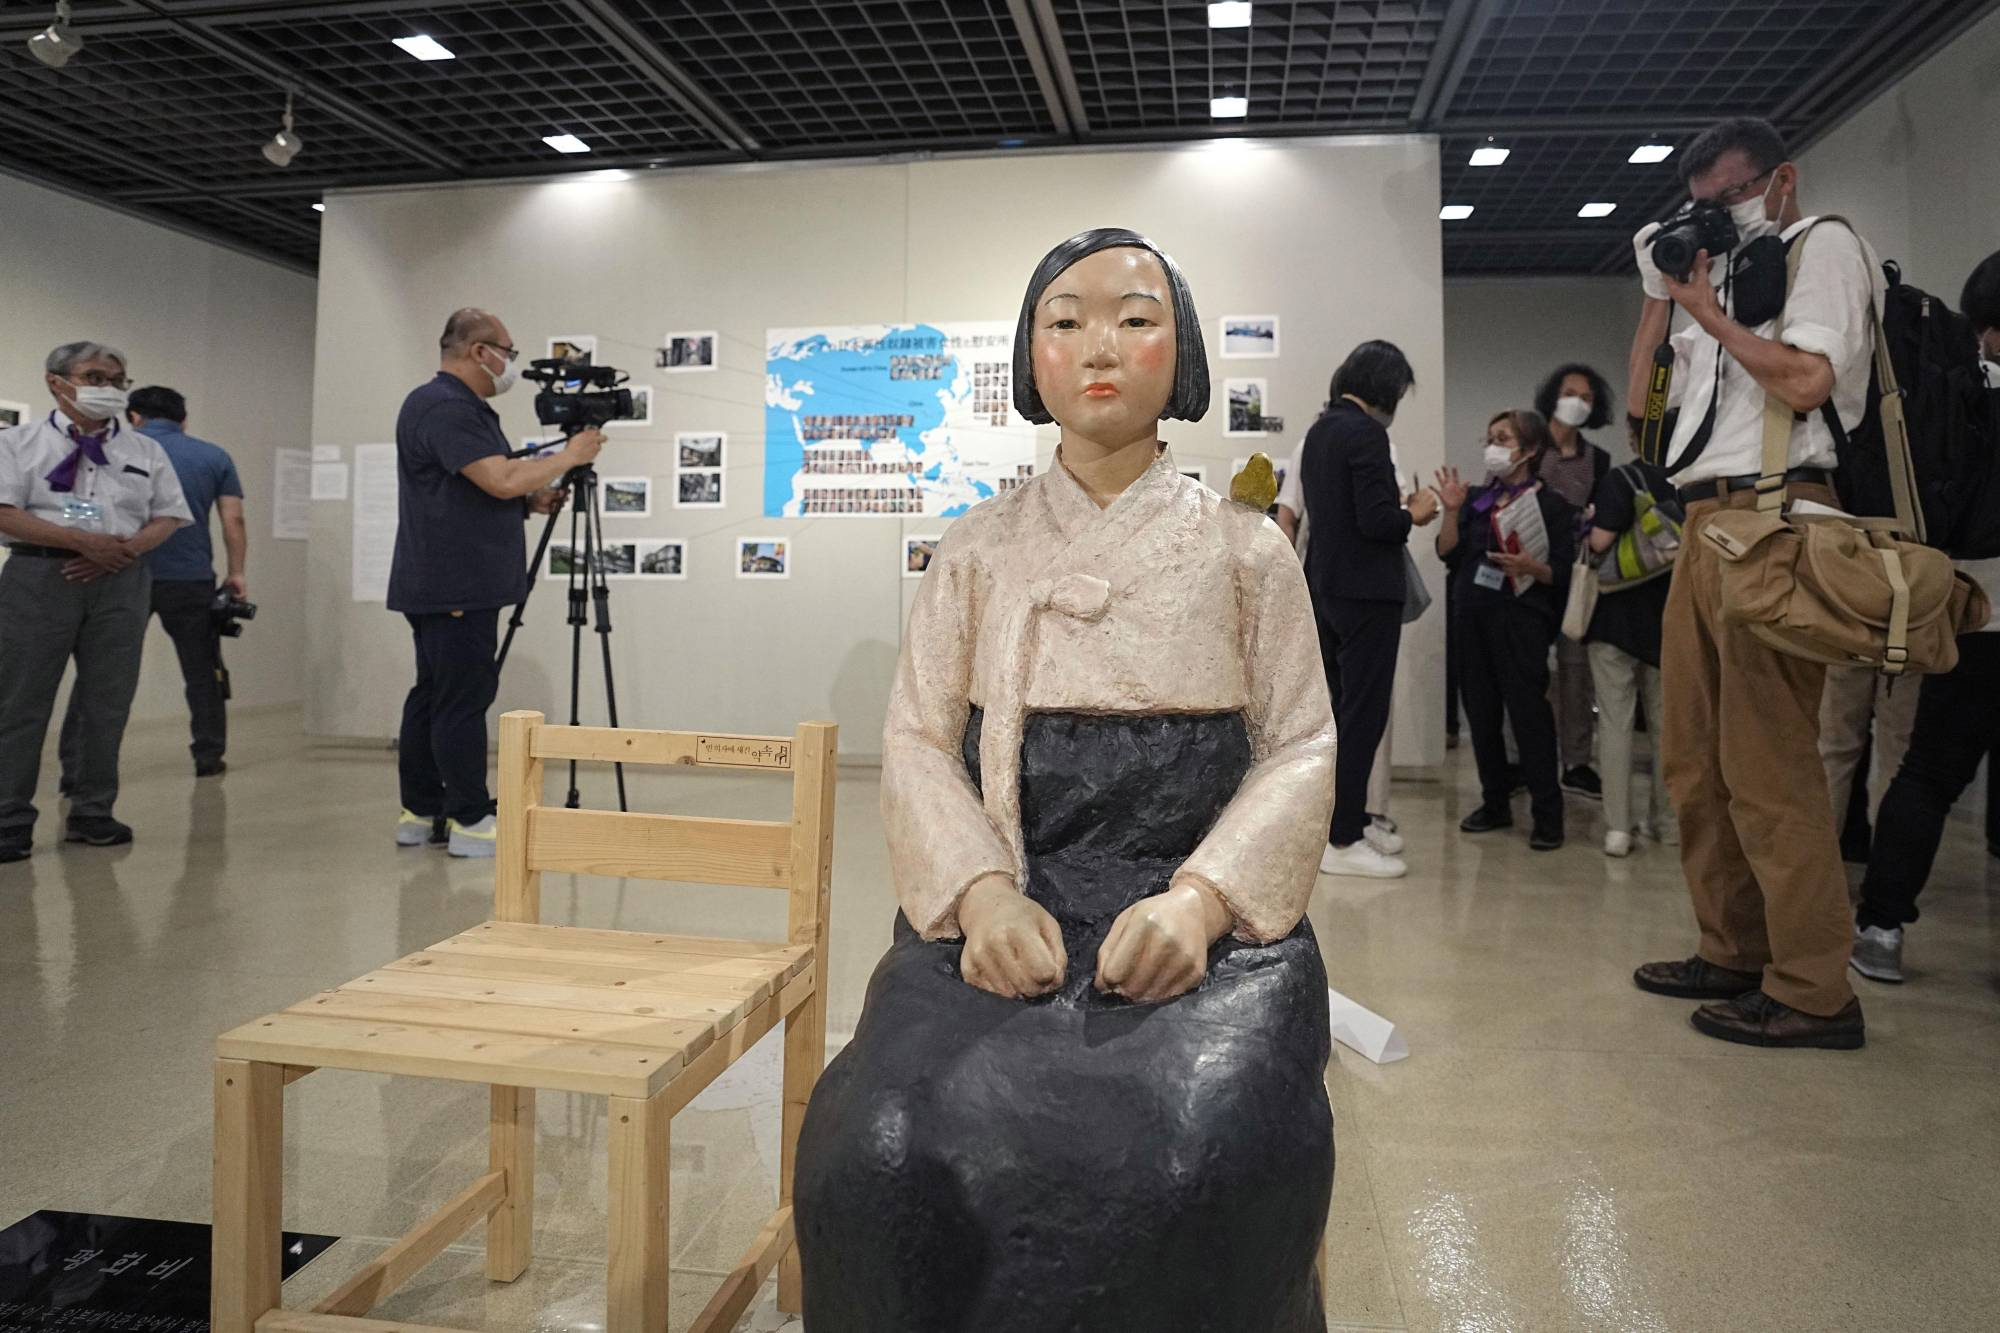 A statue symbolizing 'comfort women' is put on display at an art exhibition at the Sakae municipal gallery in Nagoya on Tuesday.  | KYODO